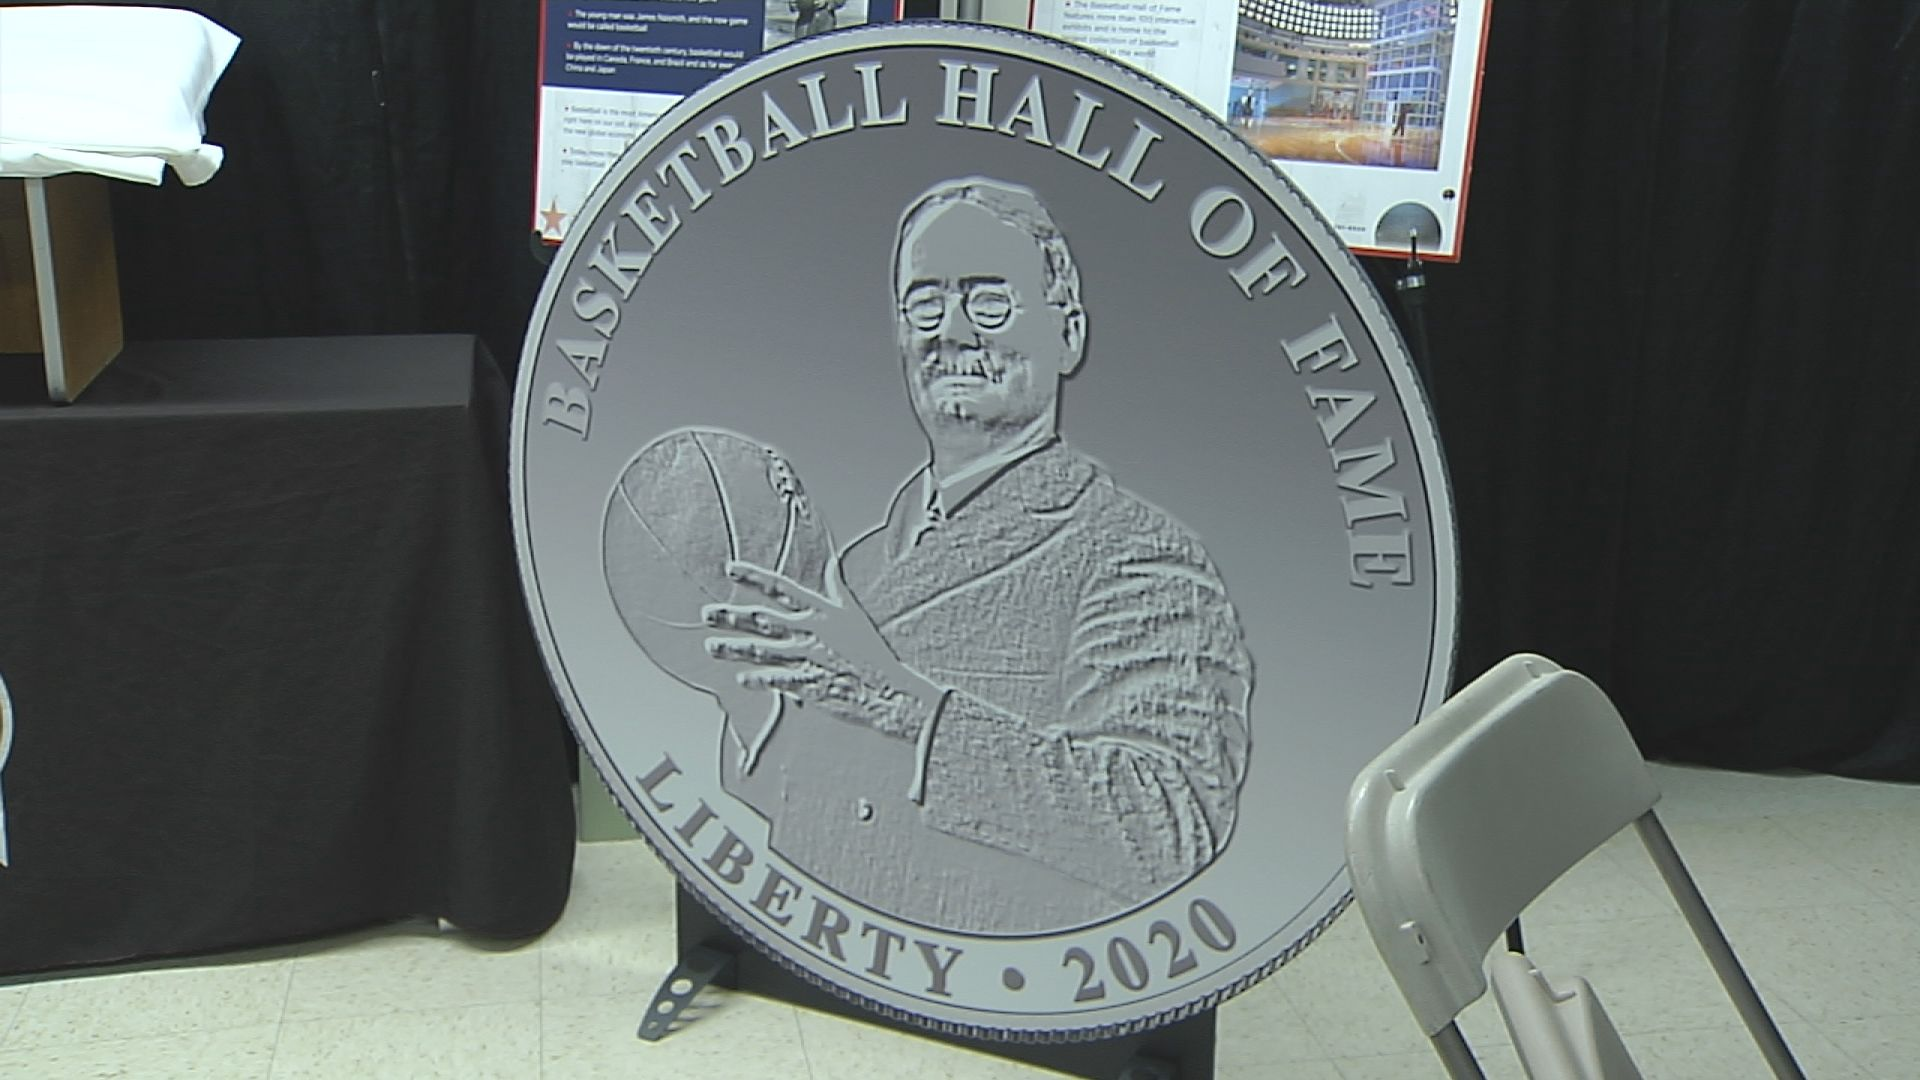 basketball hall of fame coin.jpg